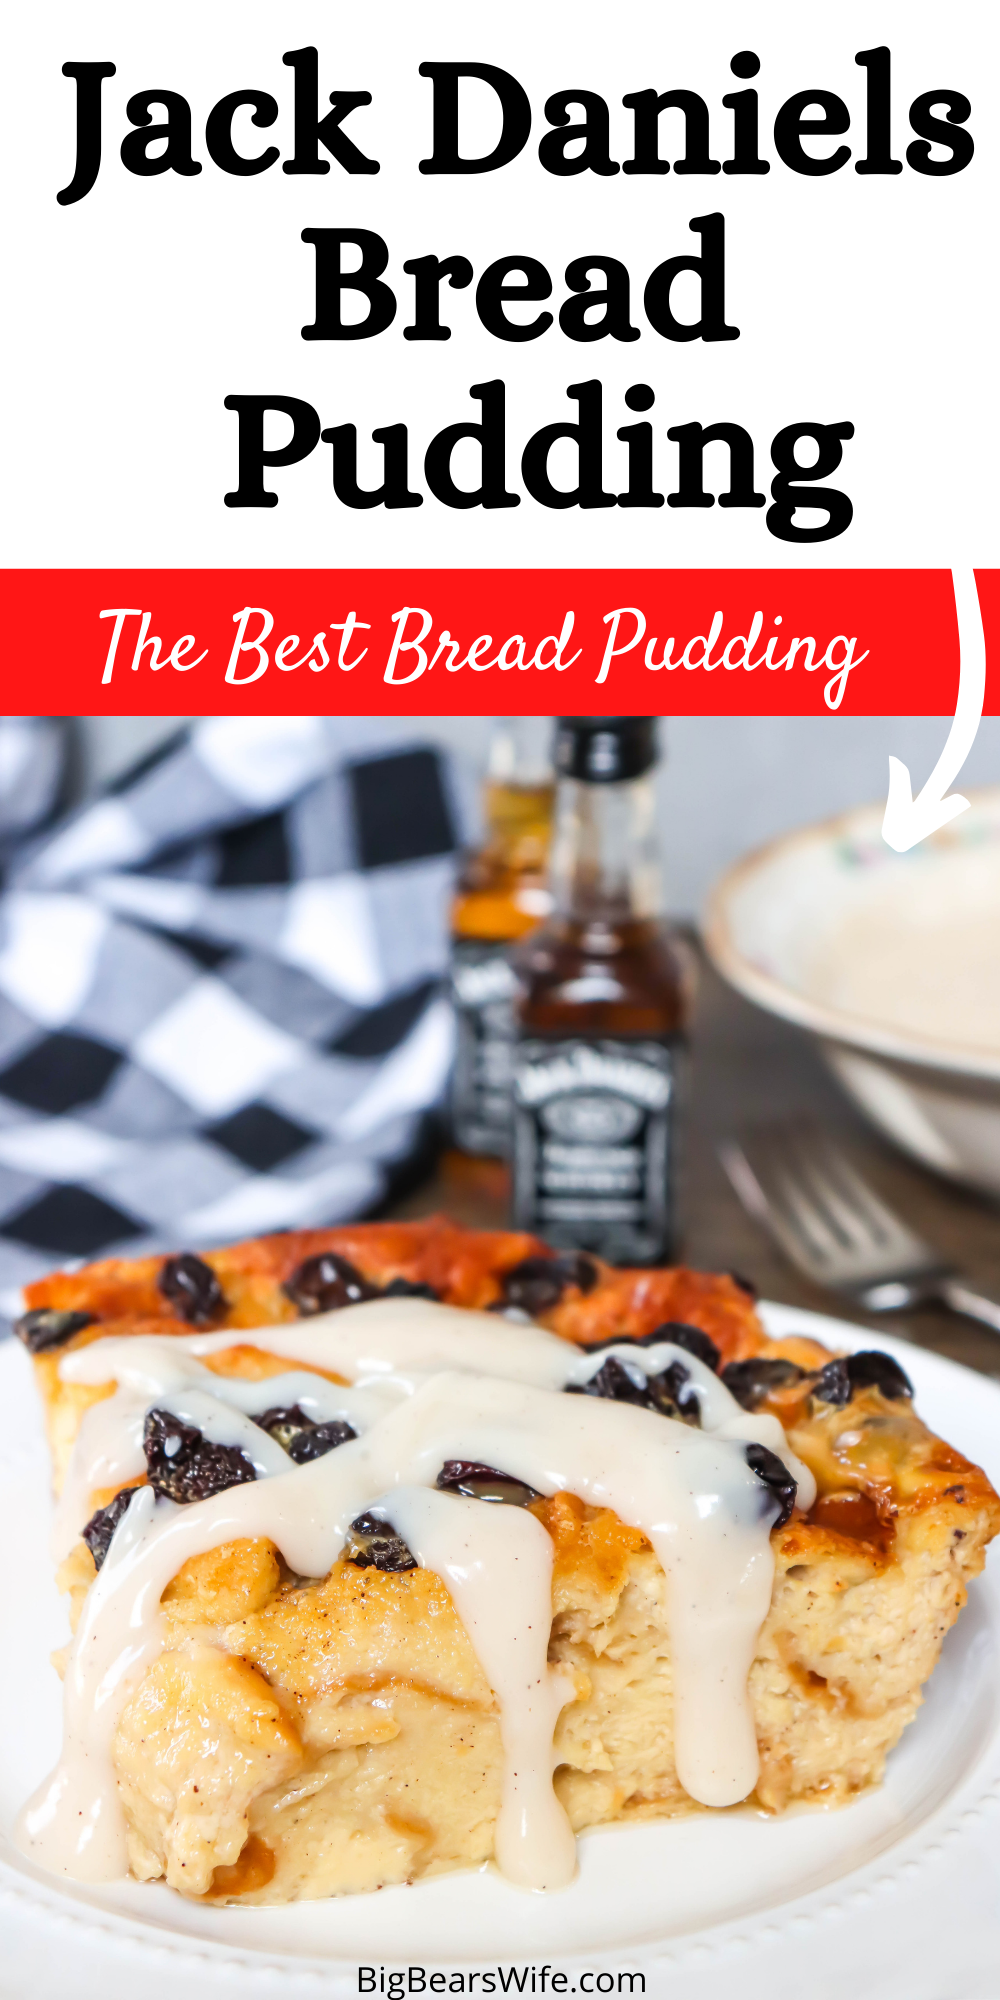 This Jack Daniels Bread Pudding is a family favorite that was passed down to me years ago from a chef at one of my favorite restaurants. It's a creamy, custard cinnamon bread pudding topped with raisins and the most amazing homemade Jack Daniels Sauce! via @bigbearswife